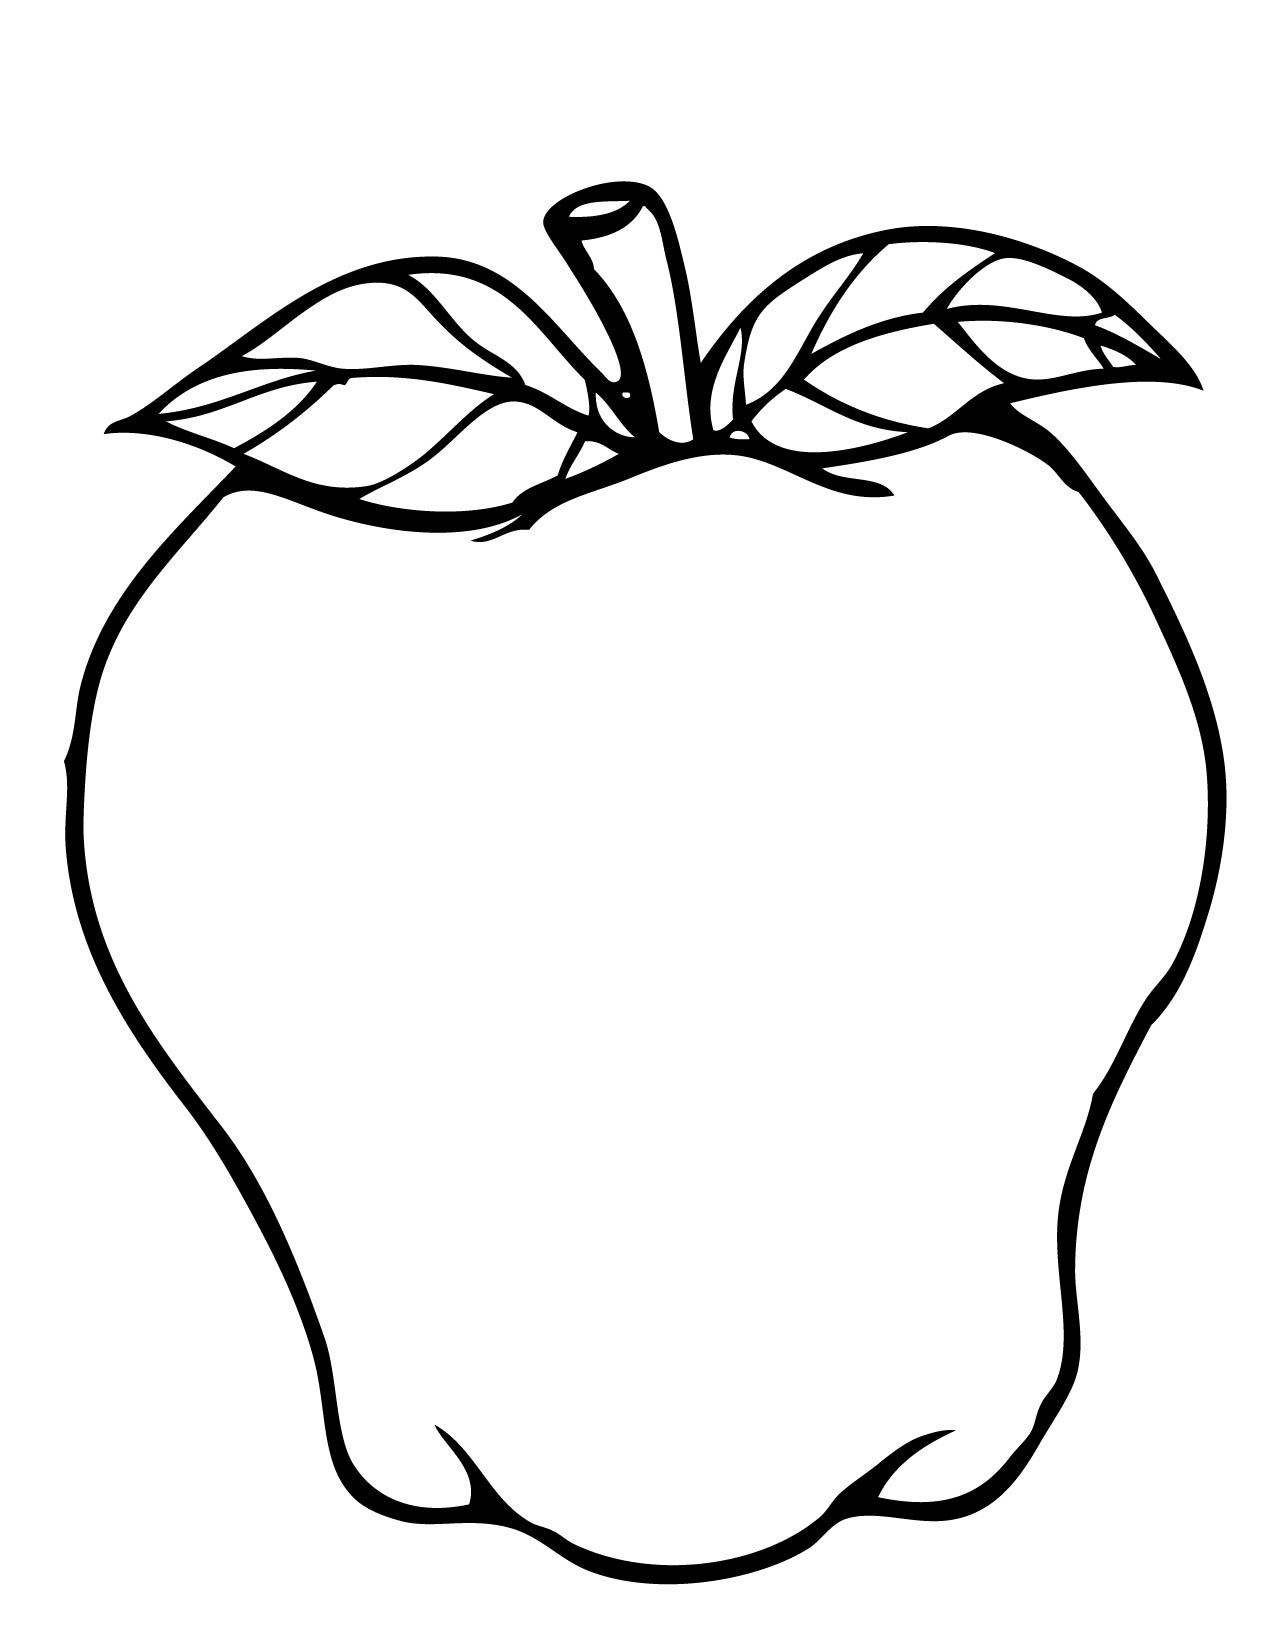 coloring image of an apple free printable apple coloring pages for kids an image apple coloring of